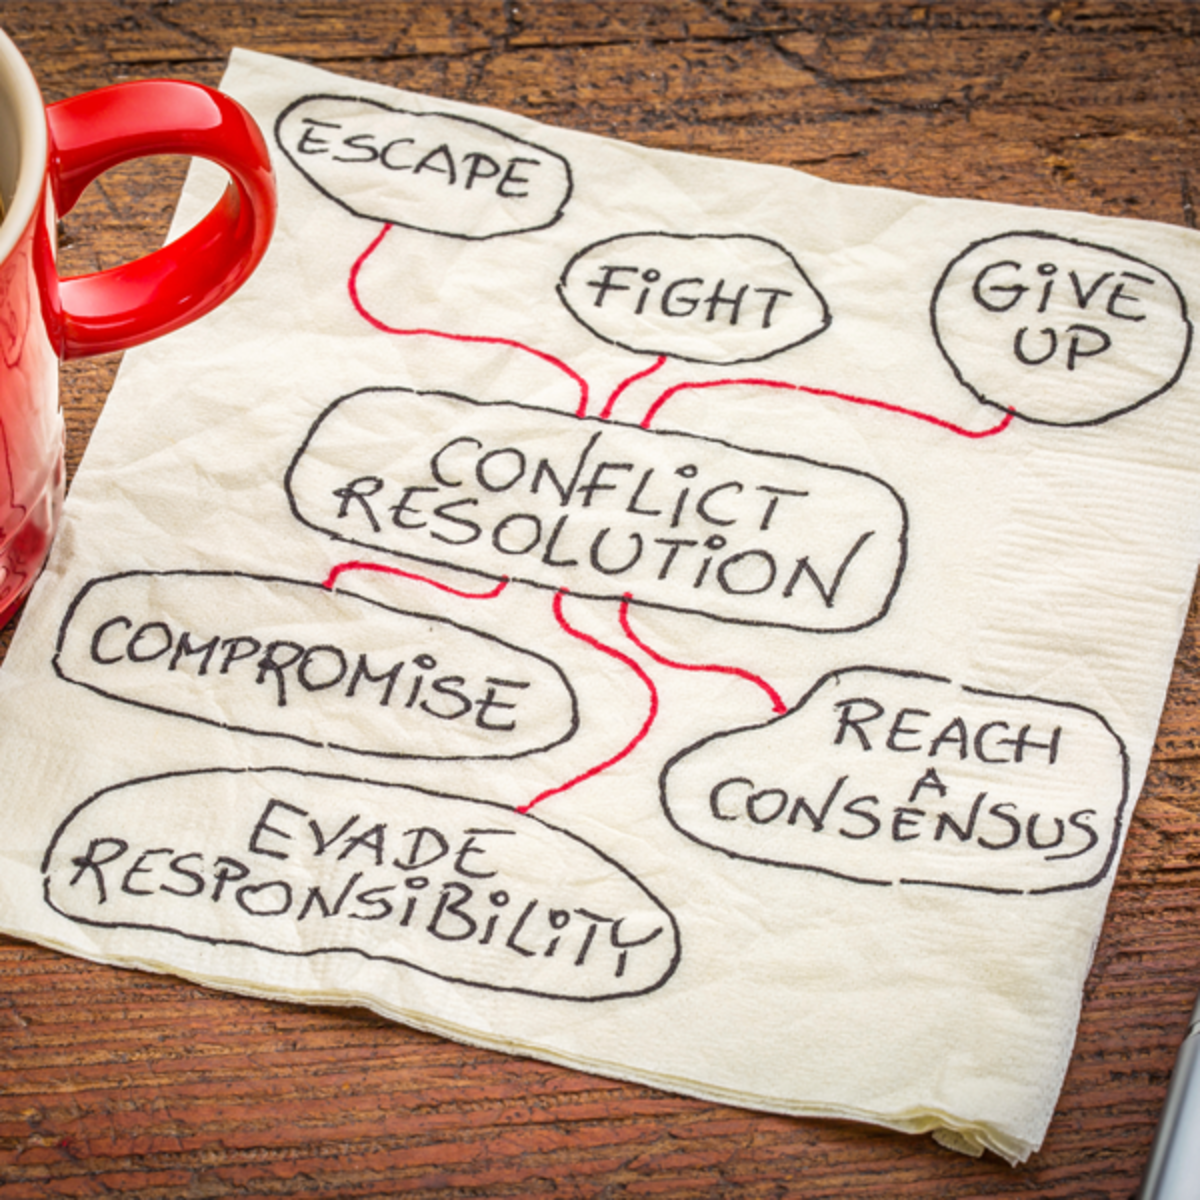 Free Online Course: Conflict Resolution Skills From